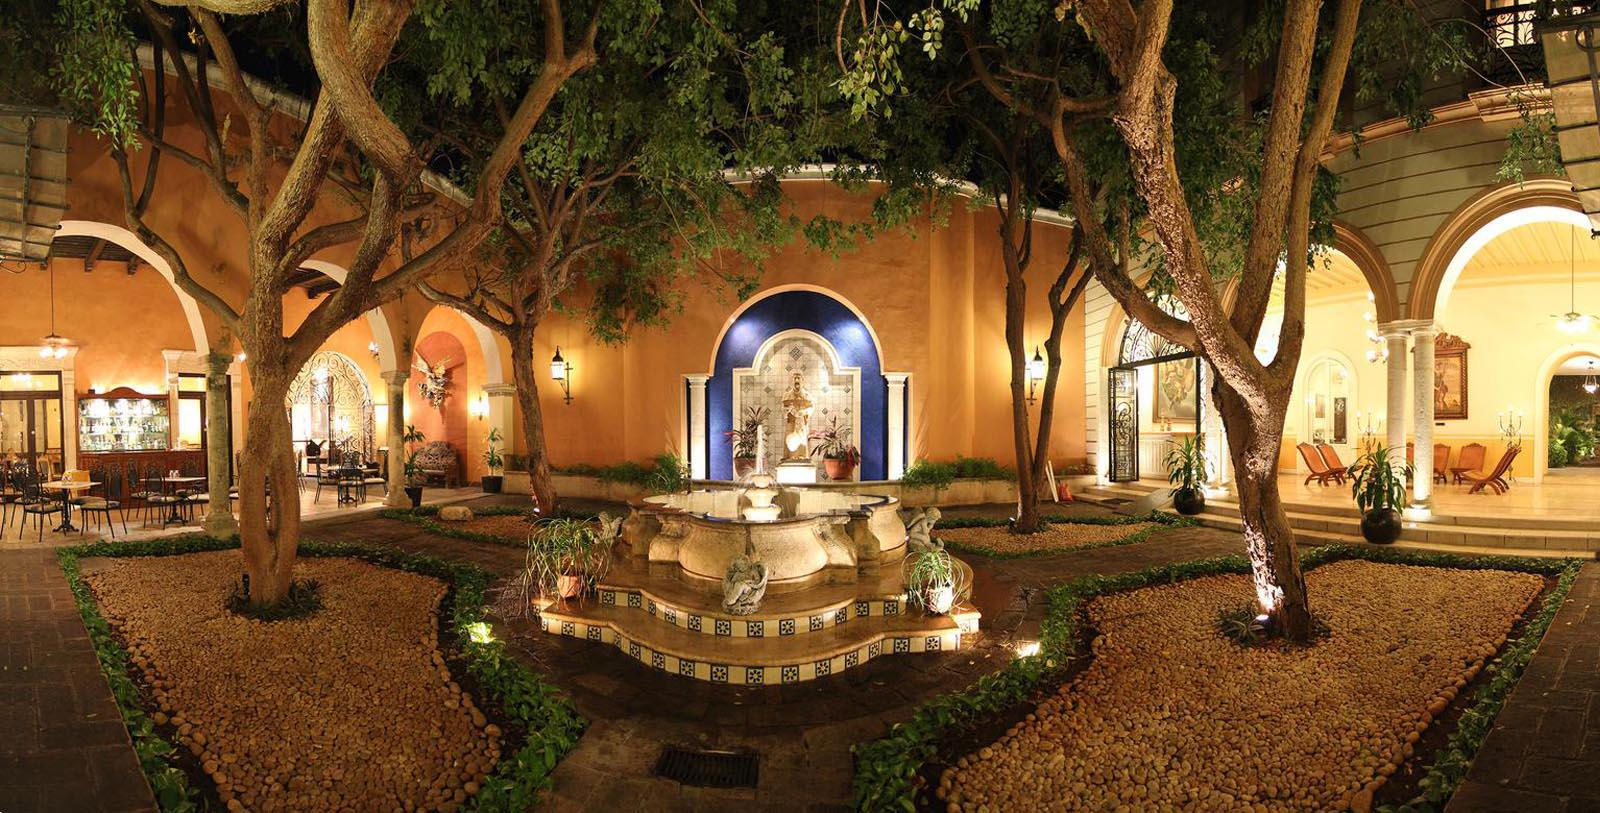 Image of Fountain and Outdoor Seating La Misión de Fray Diego, 1867, Member of Historic Hotels Worldwide, in Merida, Mexico, Special Offers, Discounted Rates, Families, Romantic Escape, Honeymoons, Anniversaries, Reunions